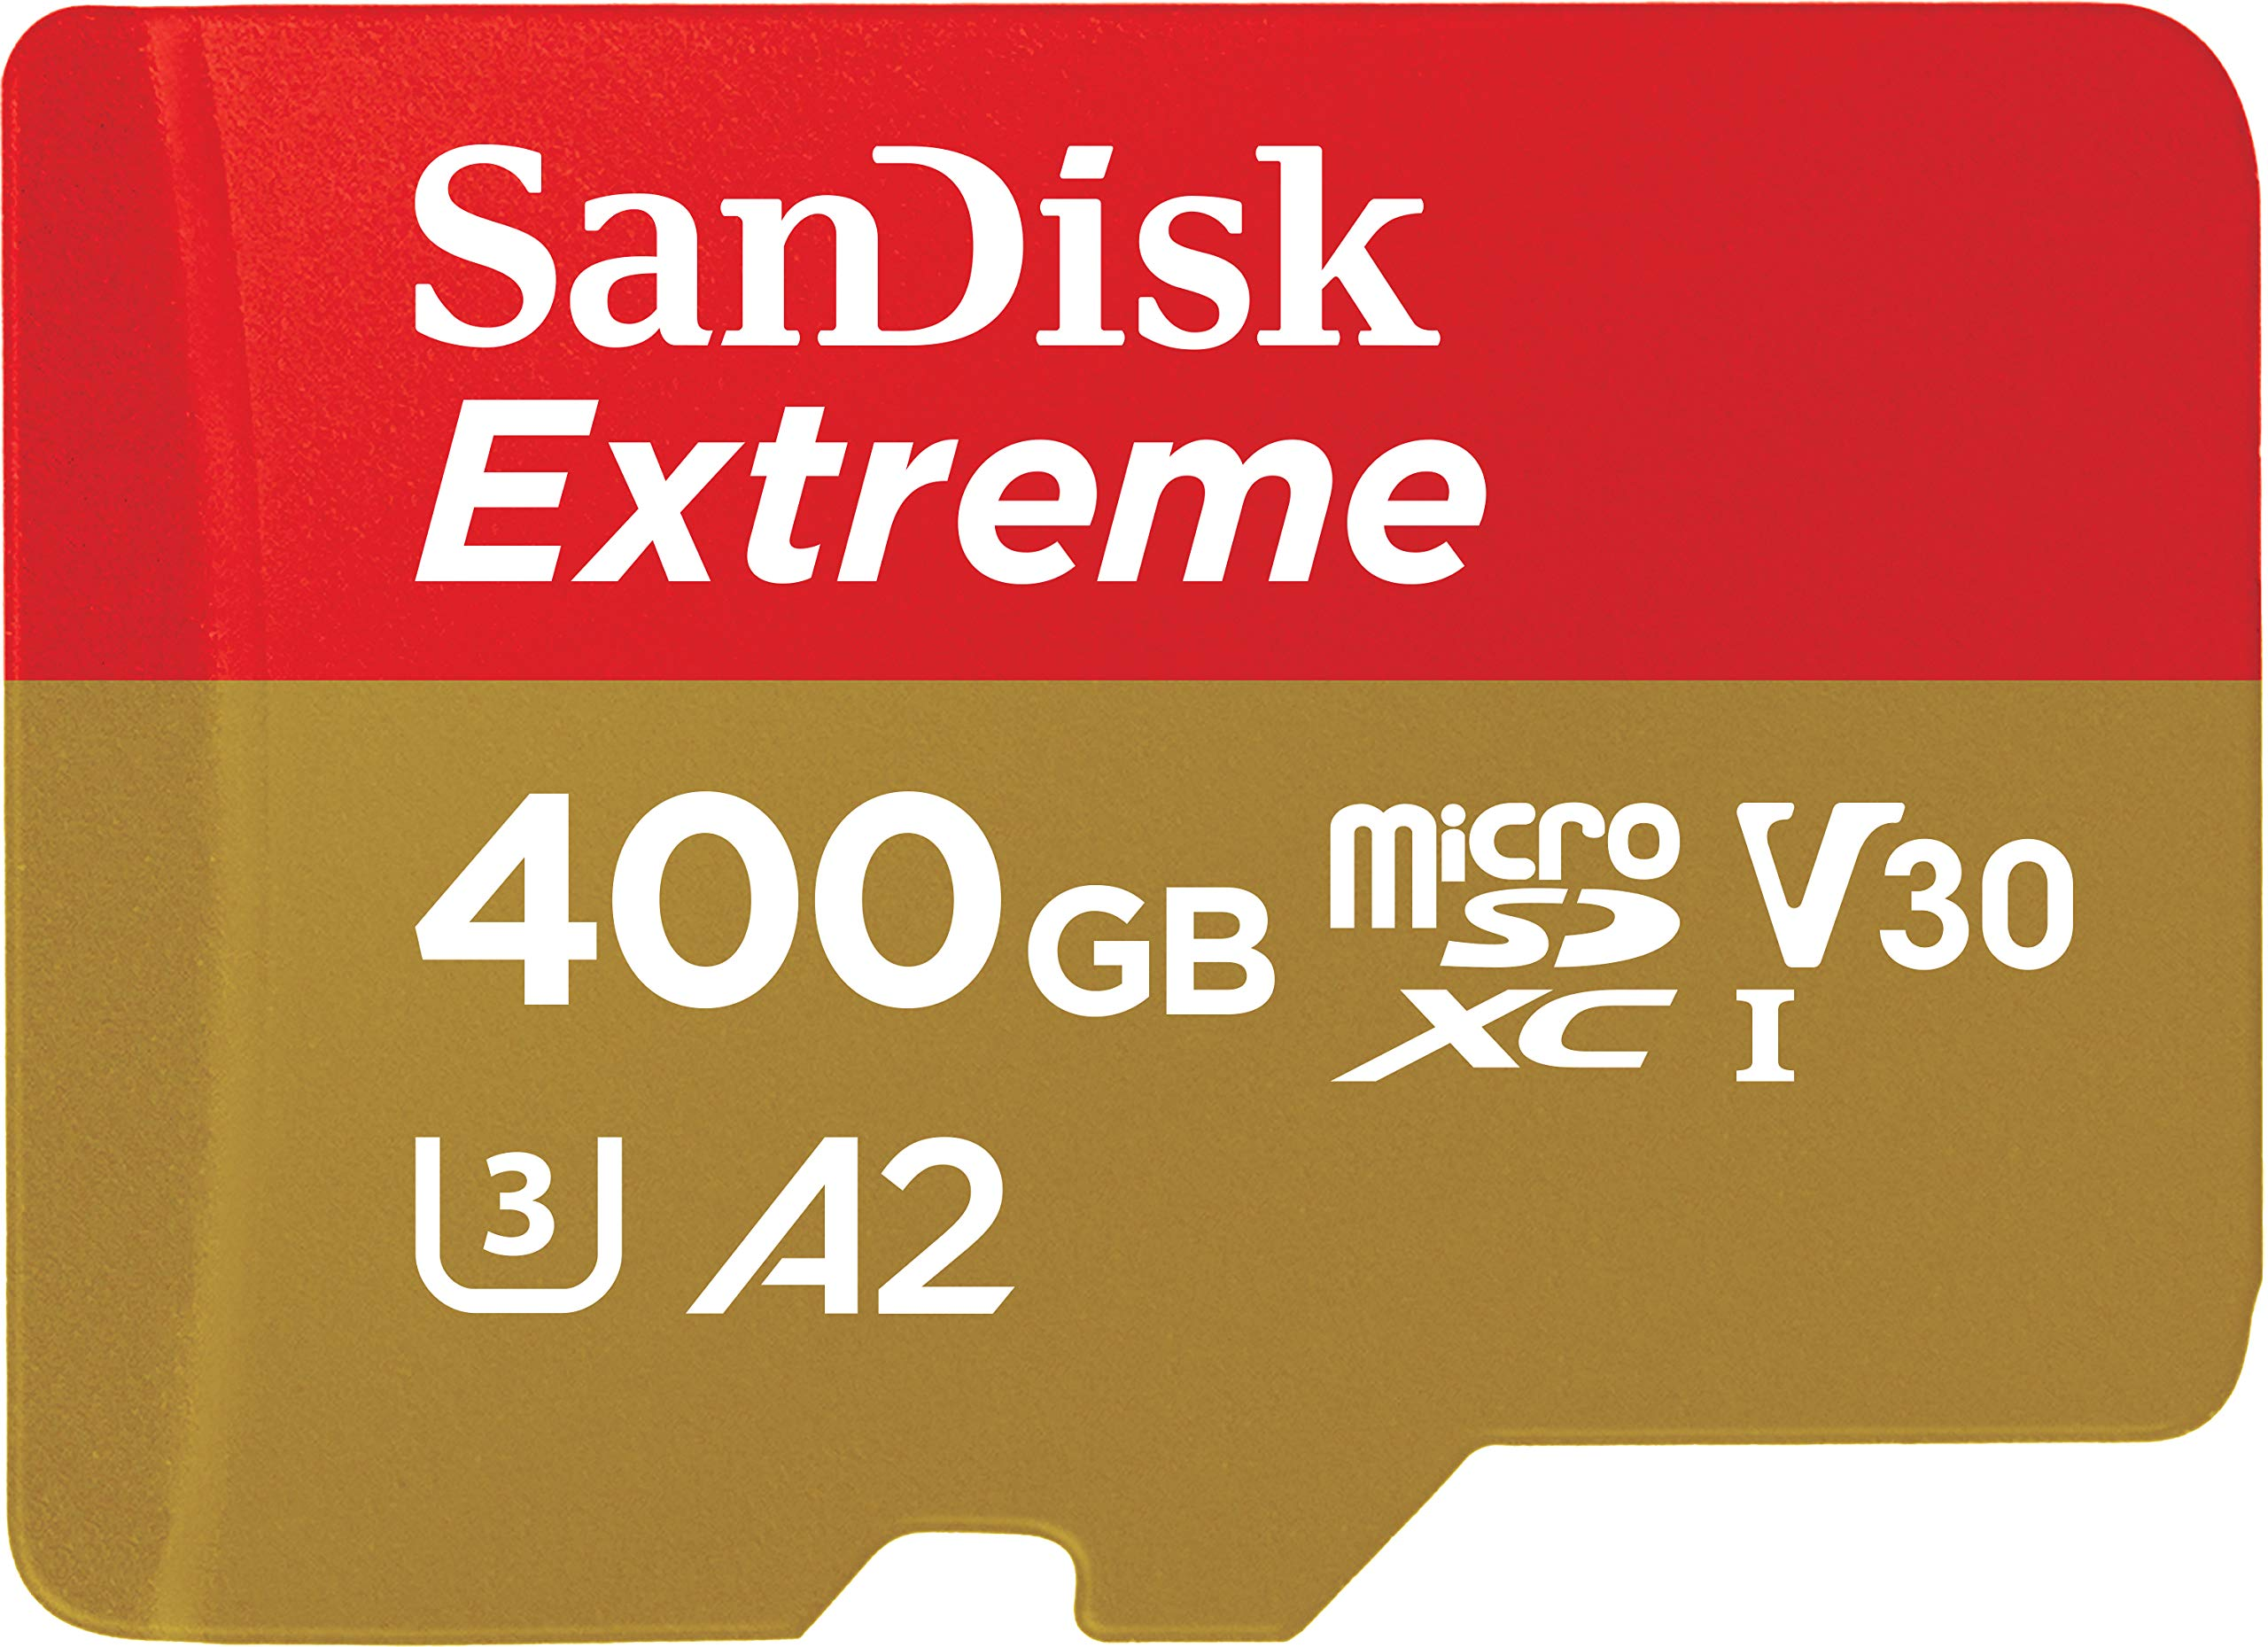 Sandisk 400gb Extreme Microsd Uhs-i Card With Adapter - U3.